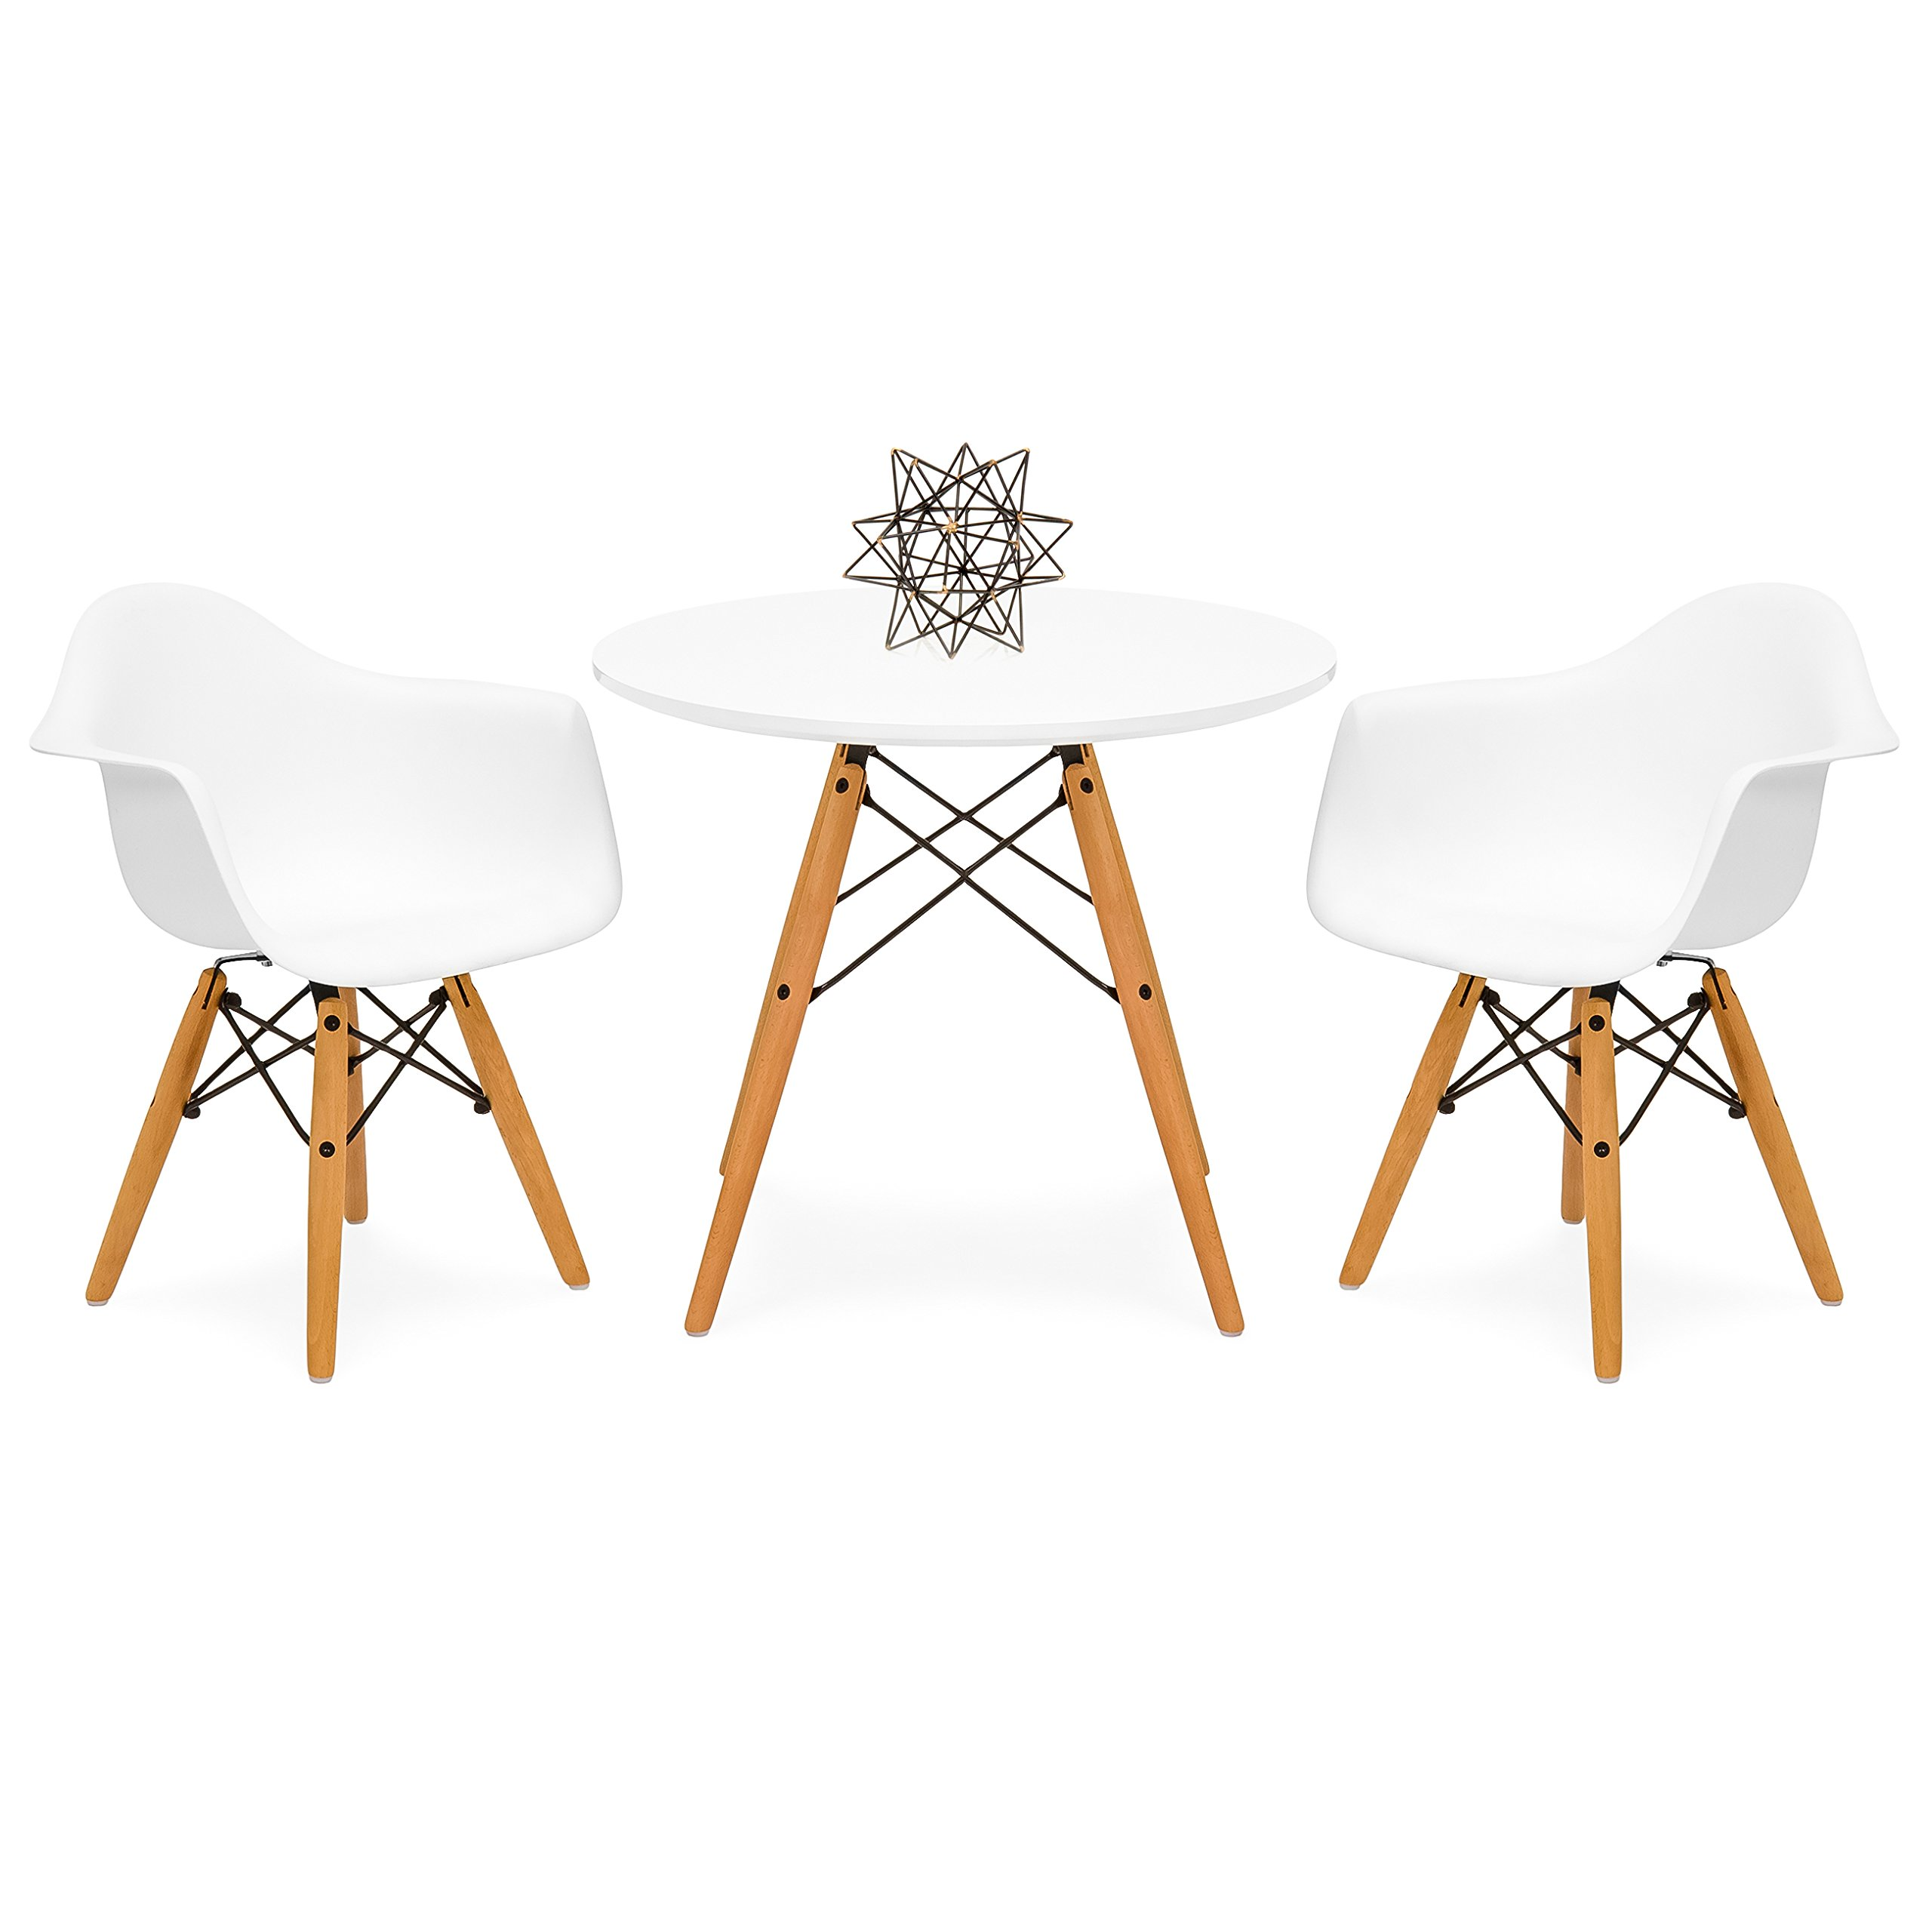 Best Choice Products Kids Mid-Century Modern Mini Eames Style Multifunctional Round Table Set for Bedroom, Playroom, Dining Room with 2 Wood Leg Chairs, White by Best Choice Products